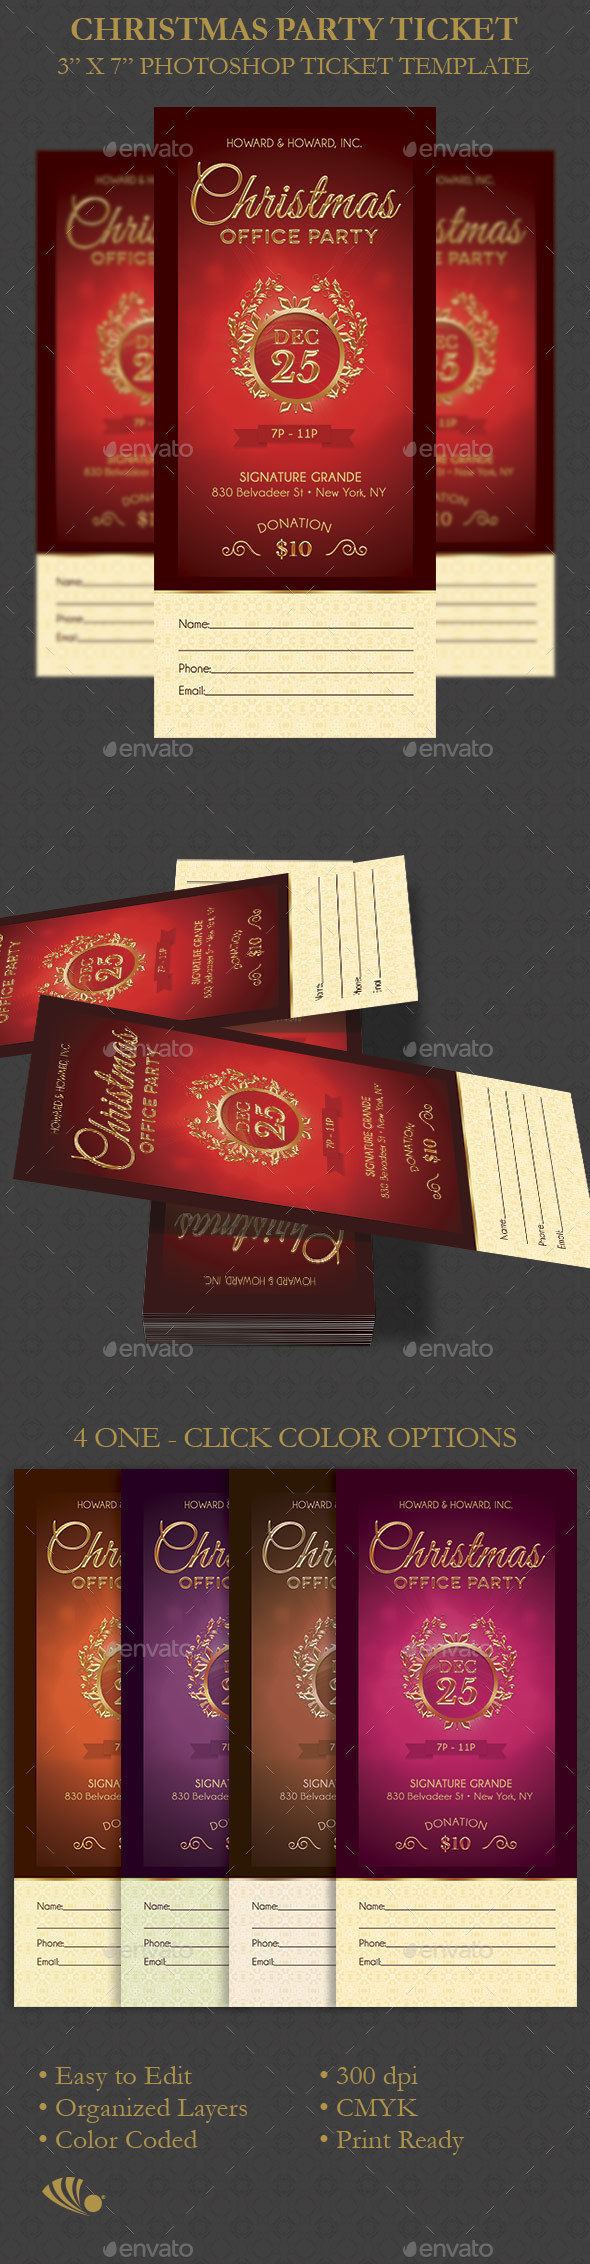 Christmas Party Ticket Template - Miscellaneous Print Templates